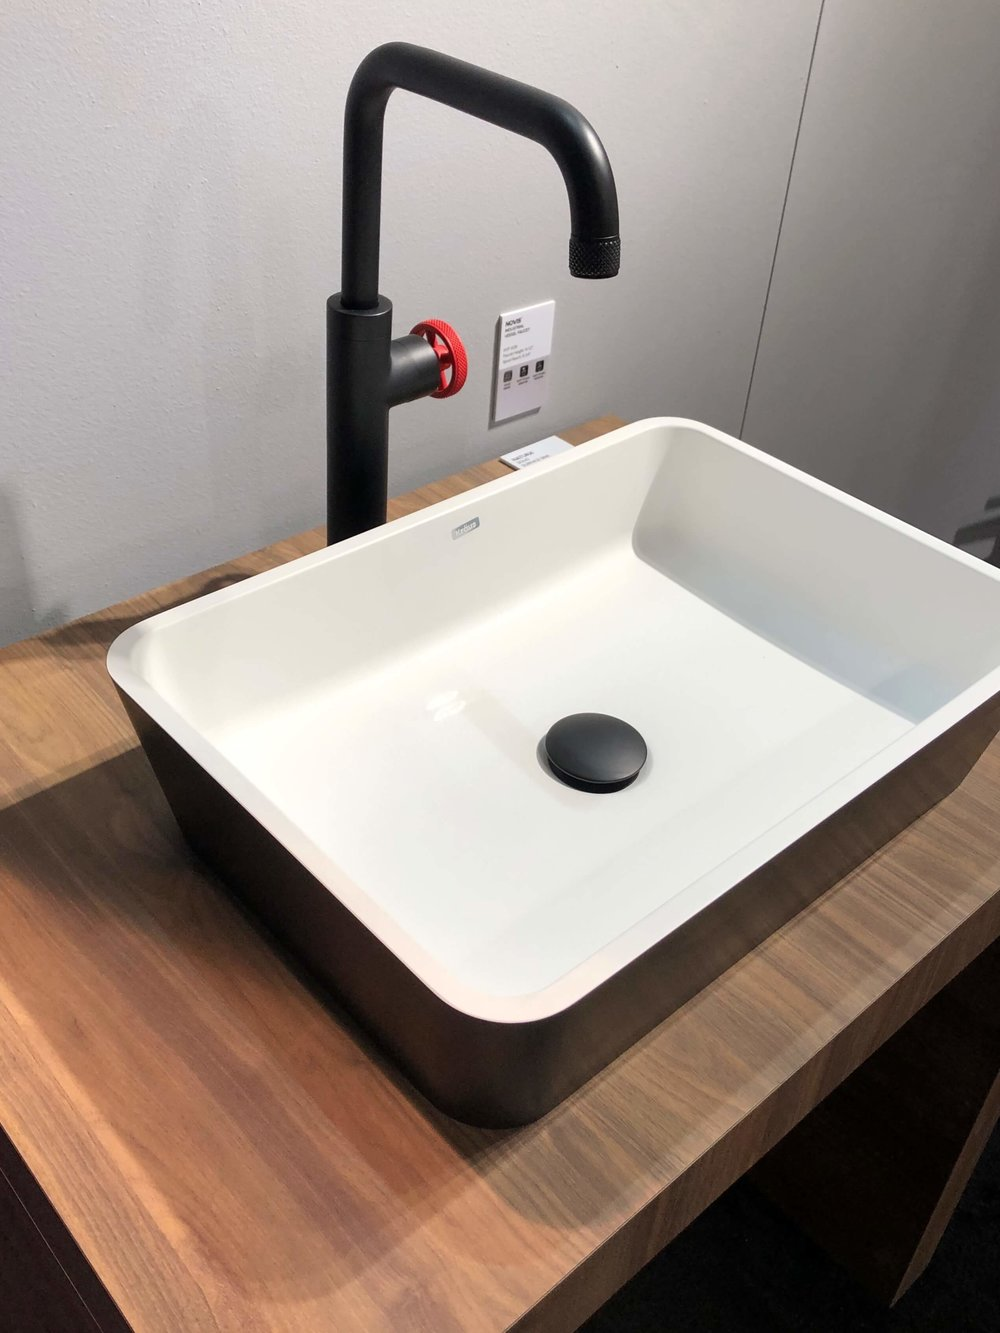 Black faucet with red handle and black and white metal vessel sink | KBIS 2019